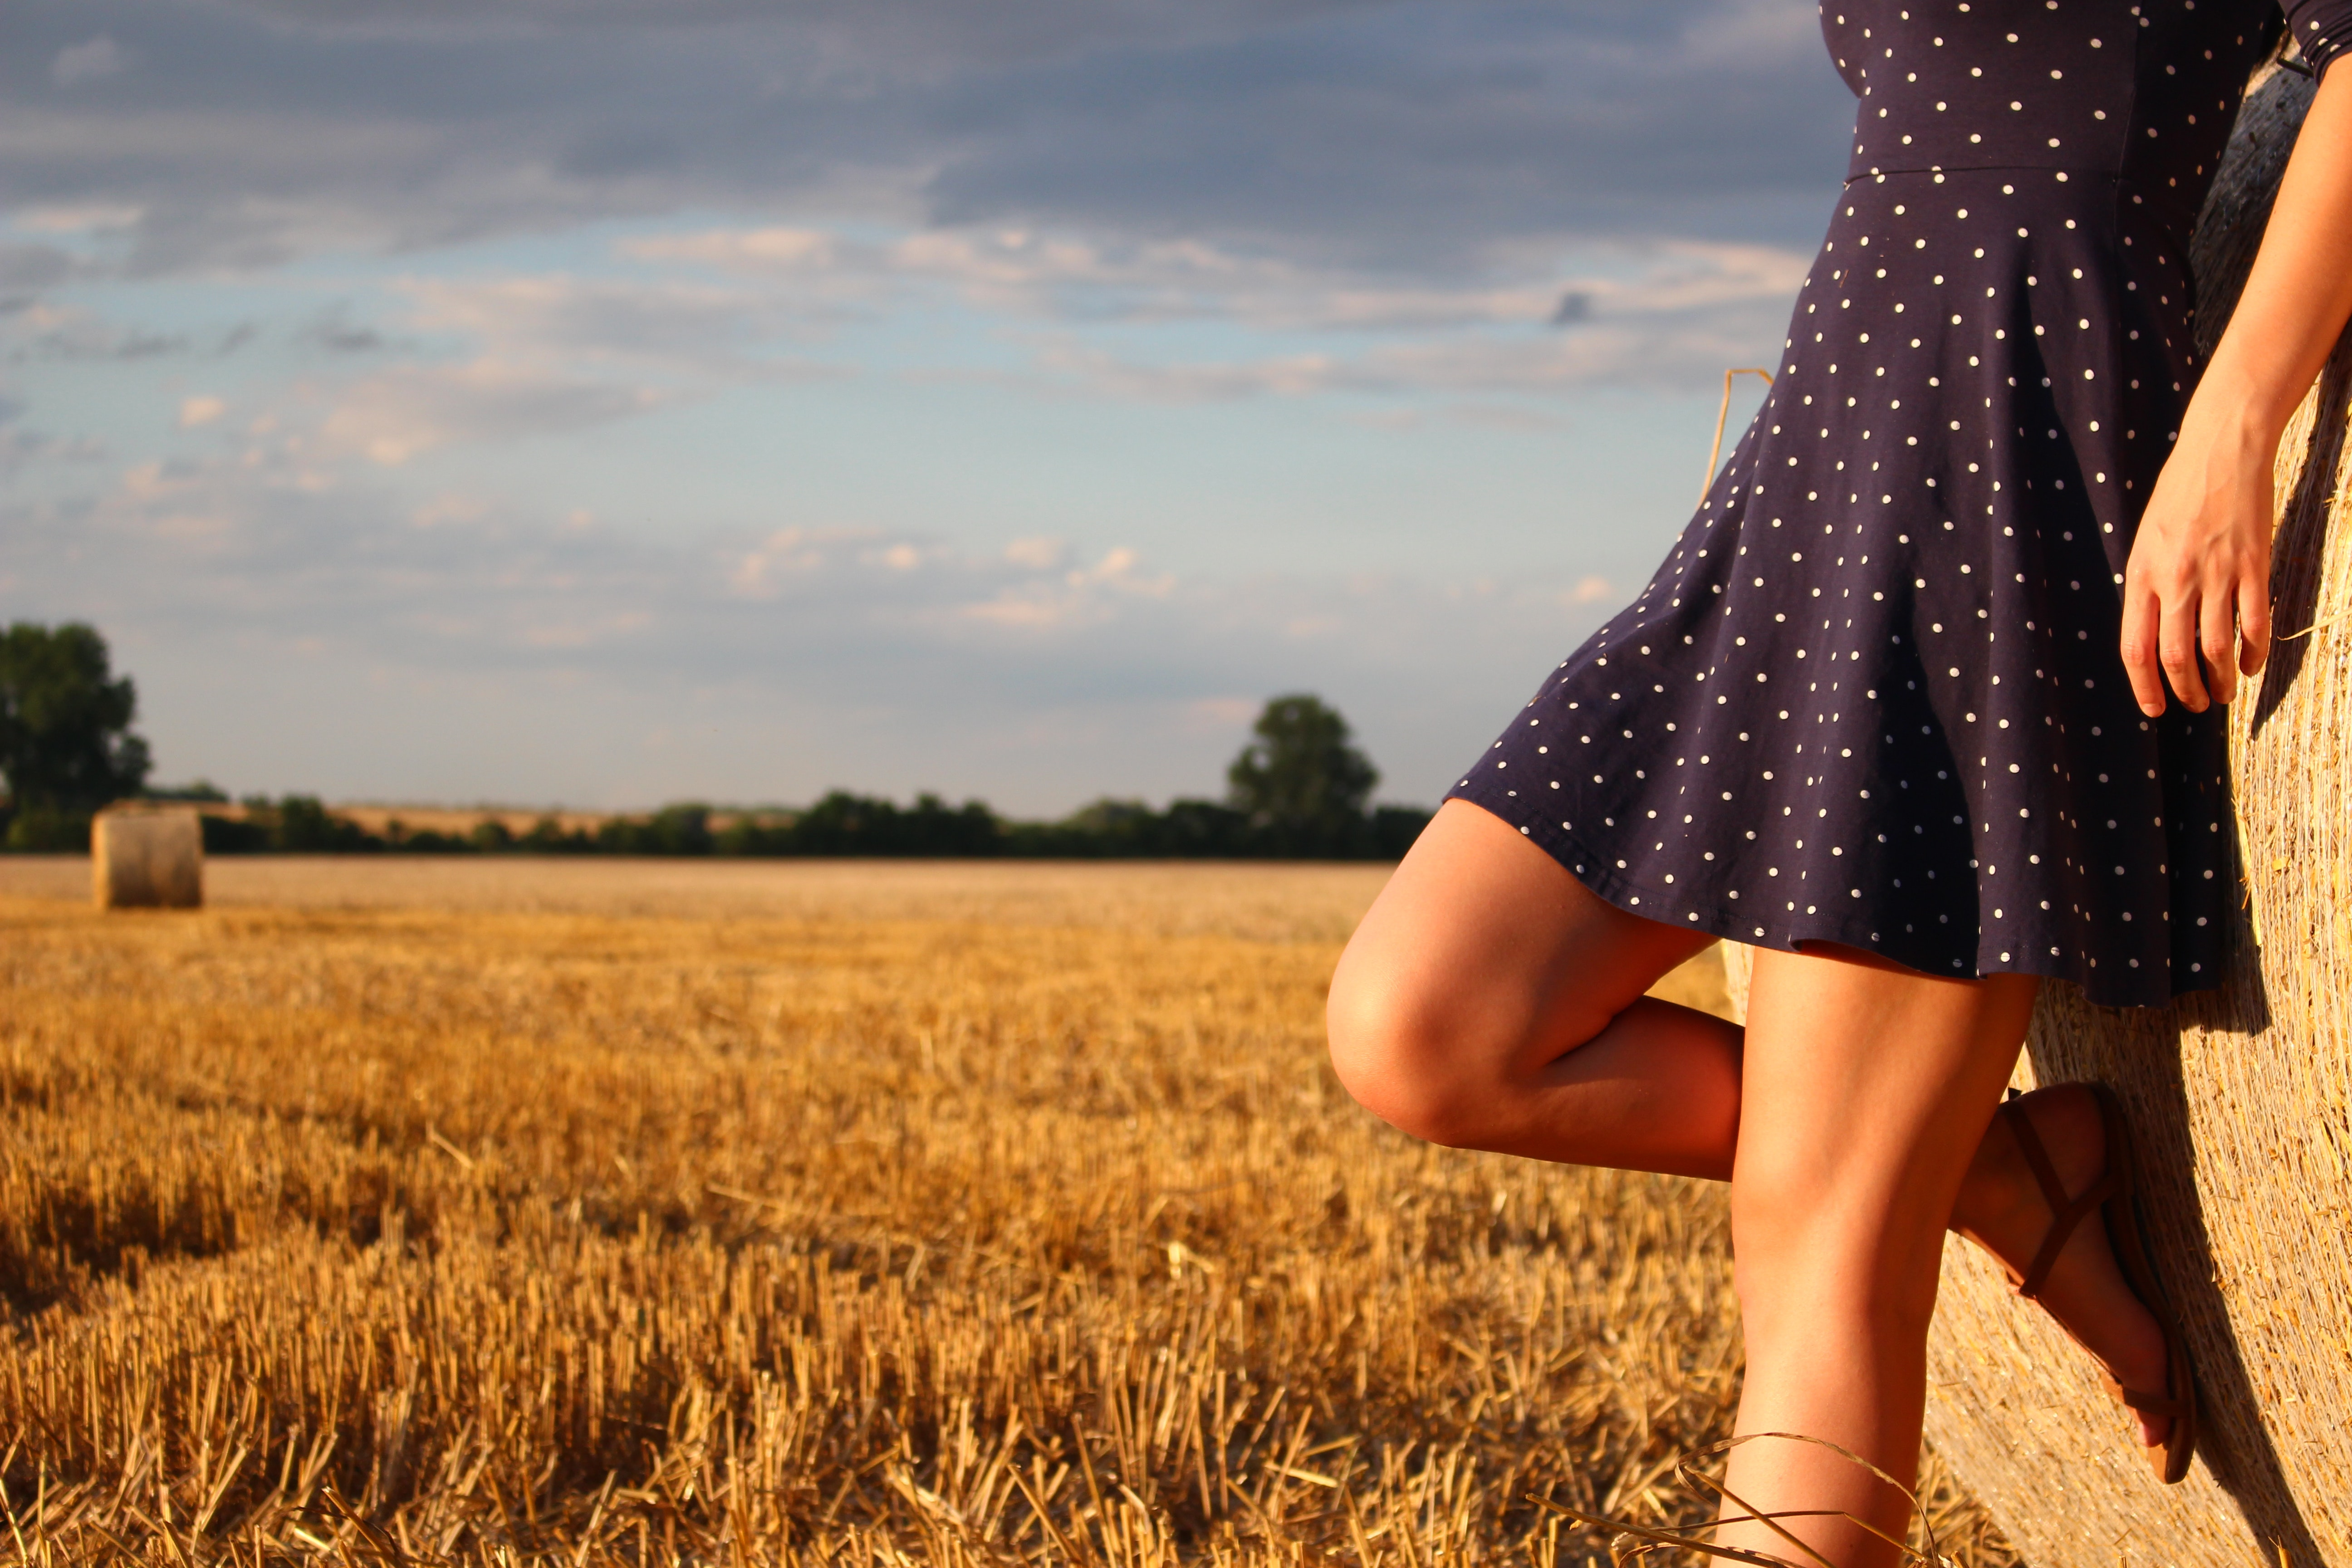 Woman Standing in a Field, Agriculture, Shadow, Outdoors, Person, HQ Photo